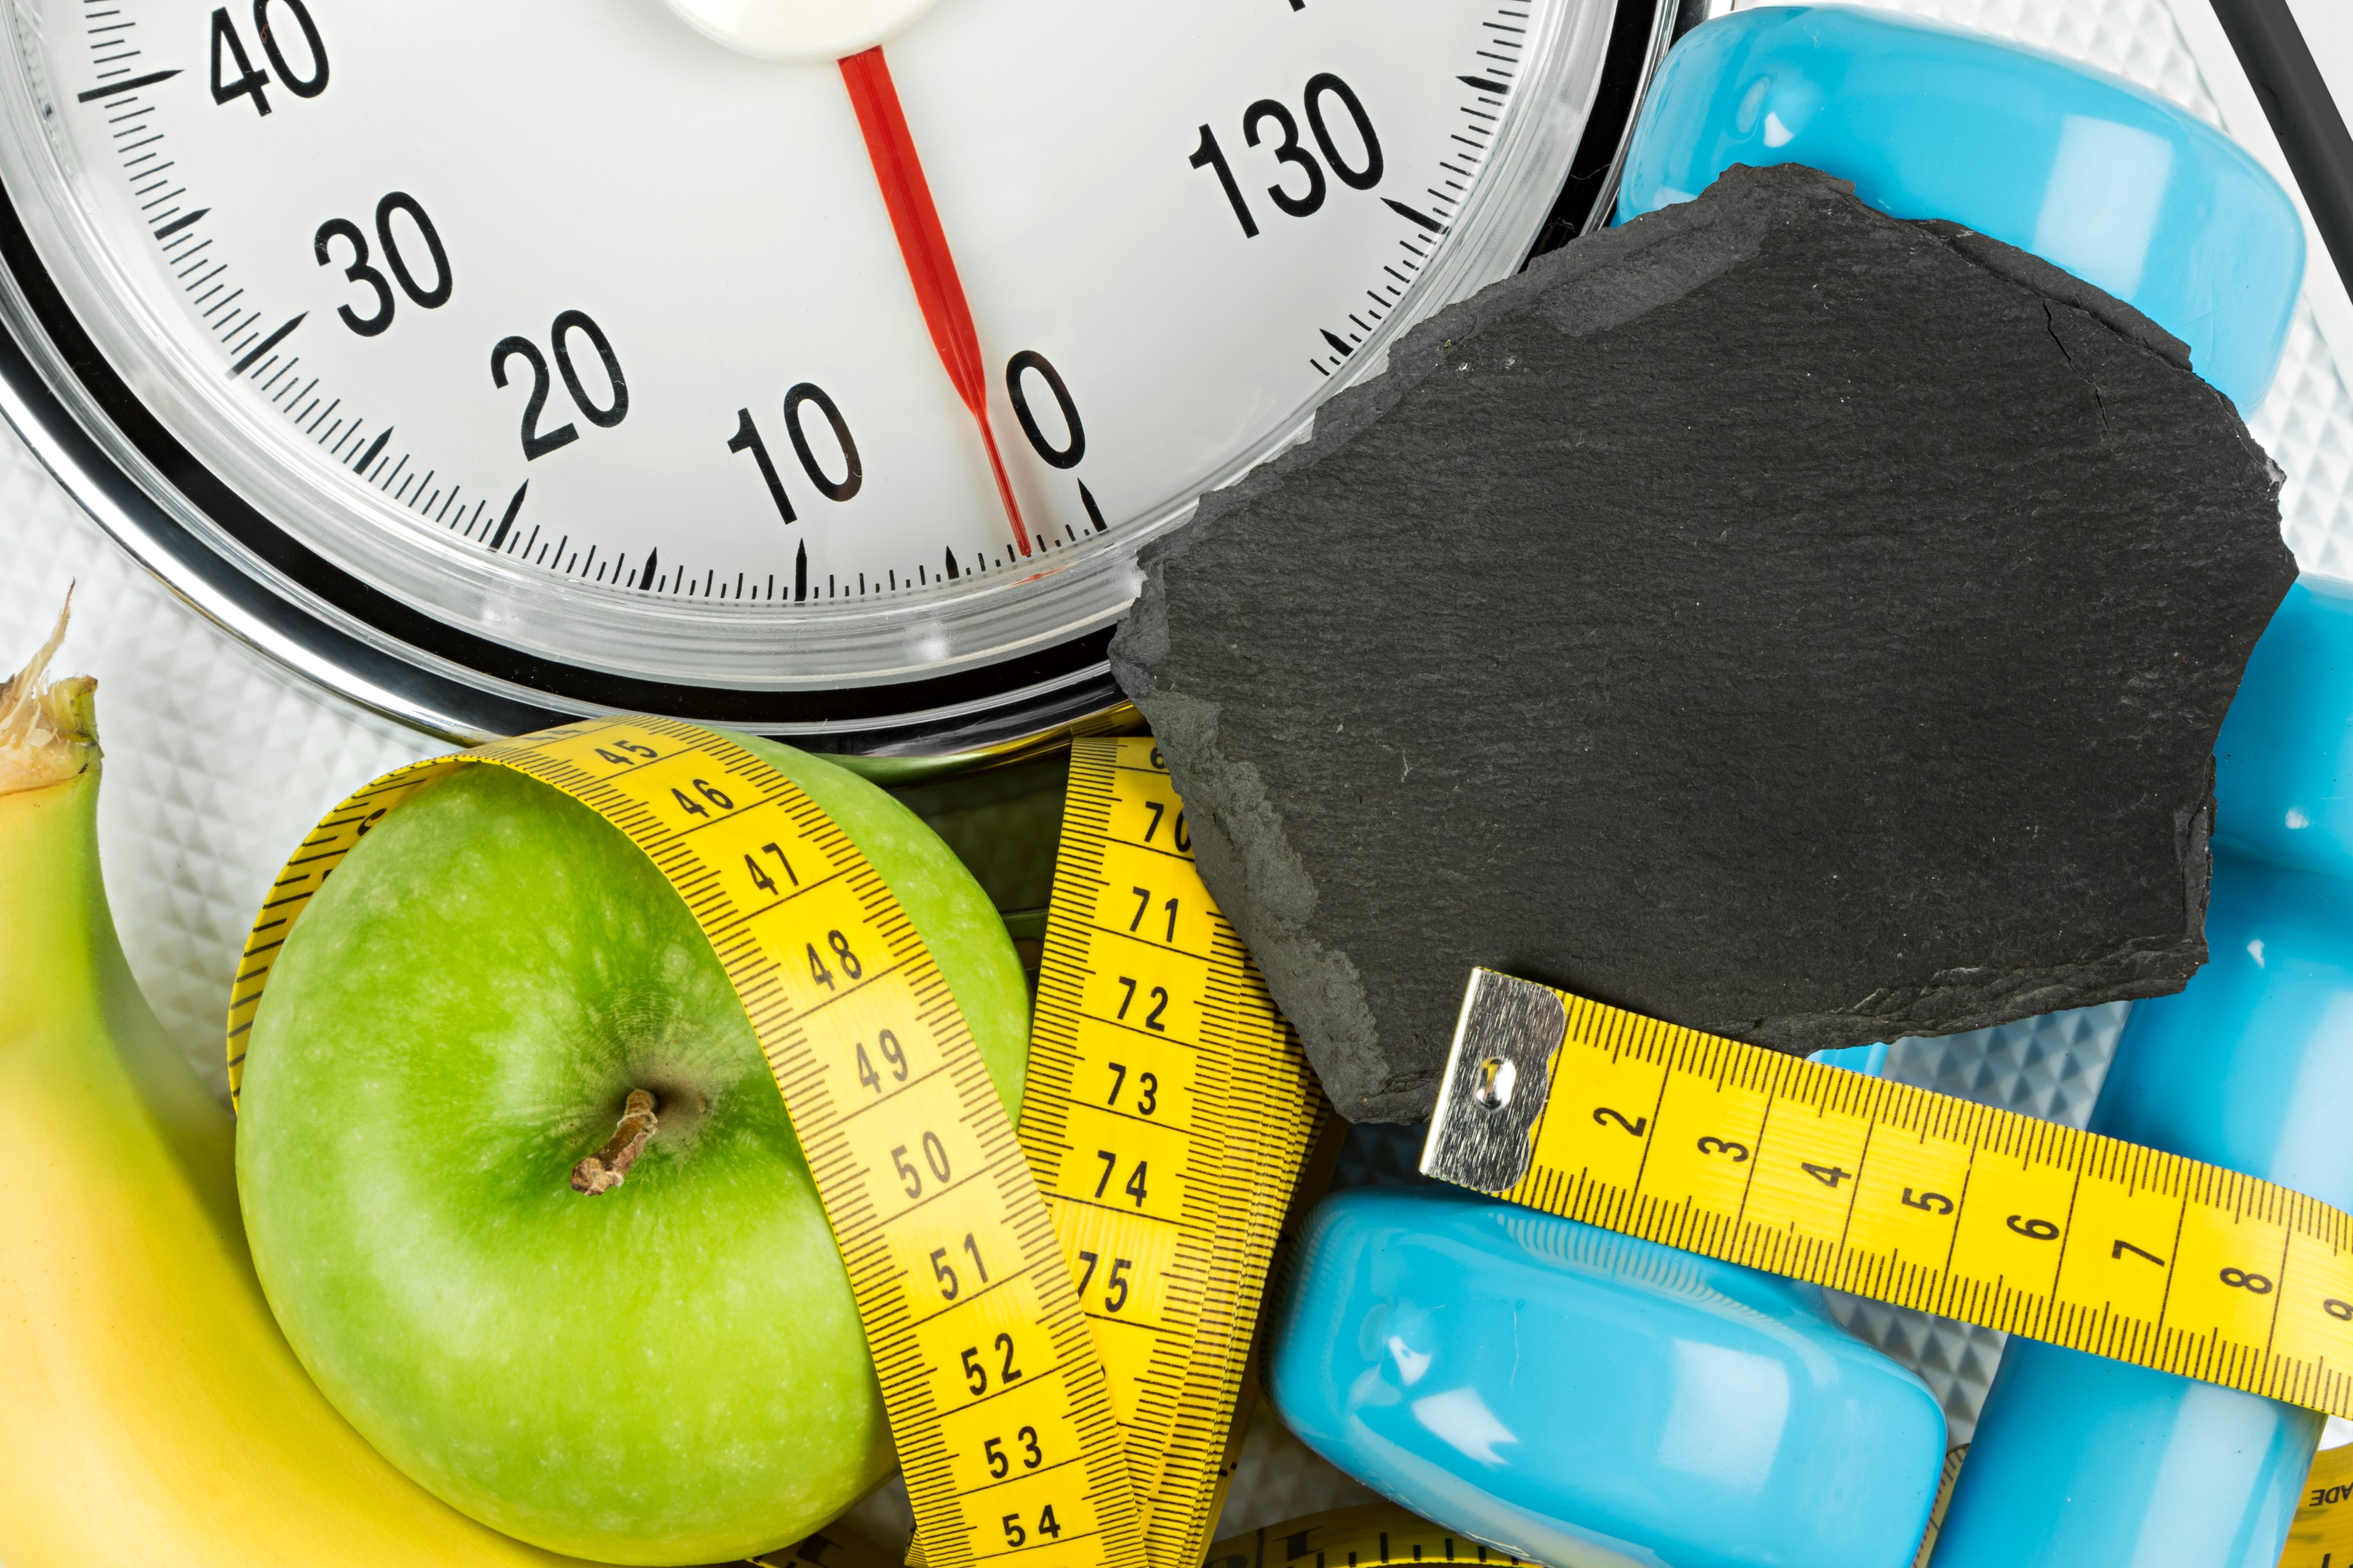 Weights, a tape measure, fruit, and a scale—all things commonly associated with New Year's resolutions